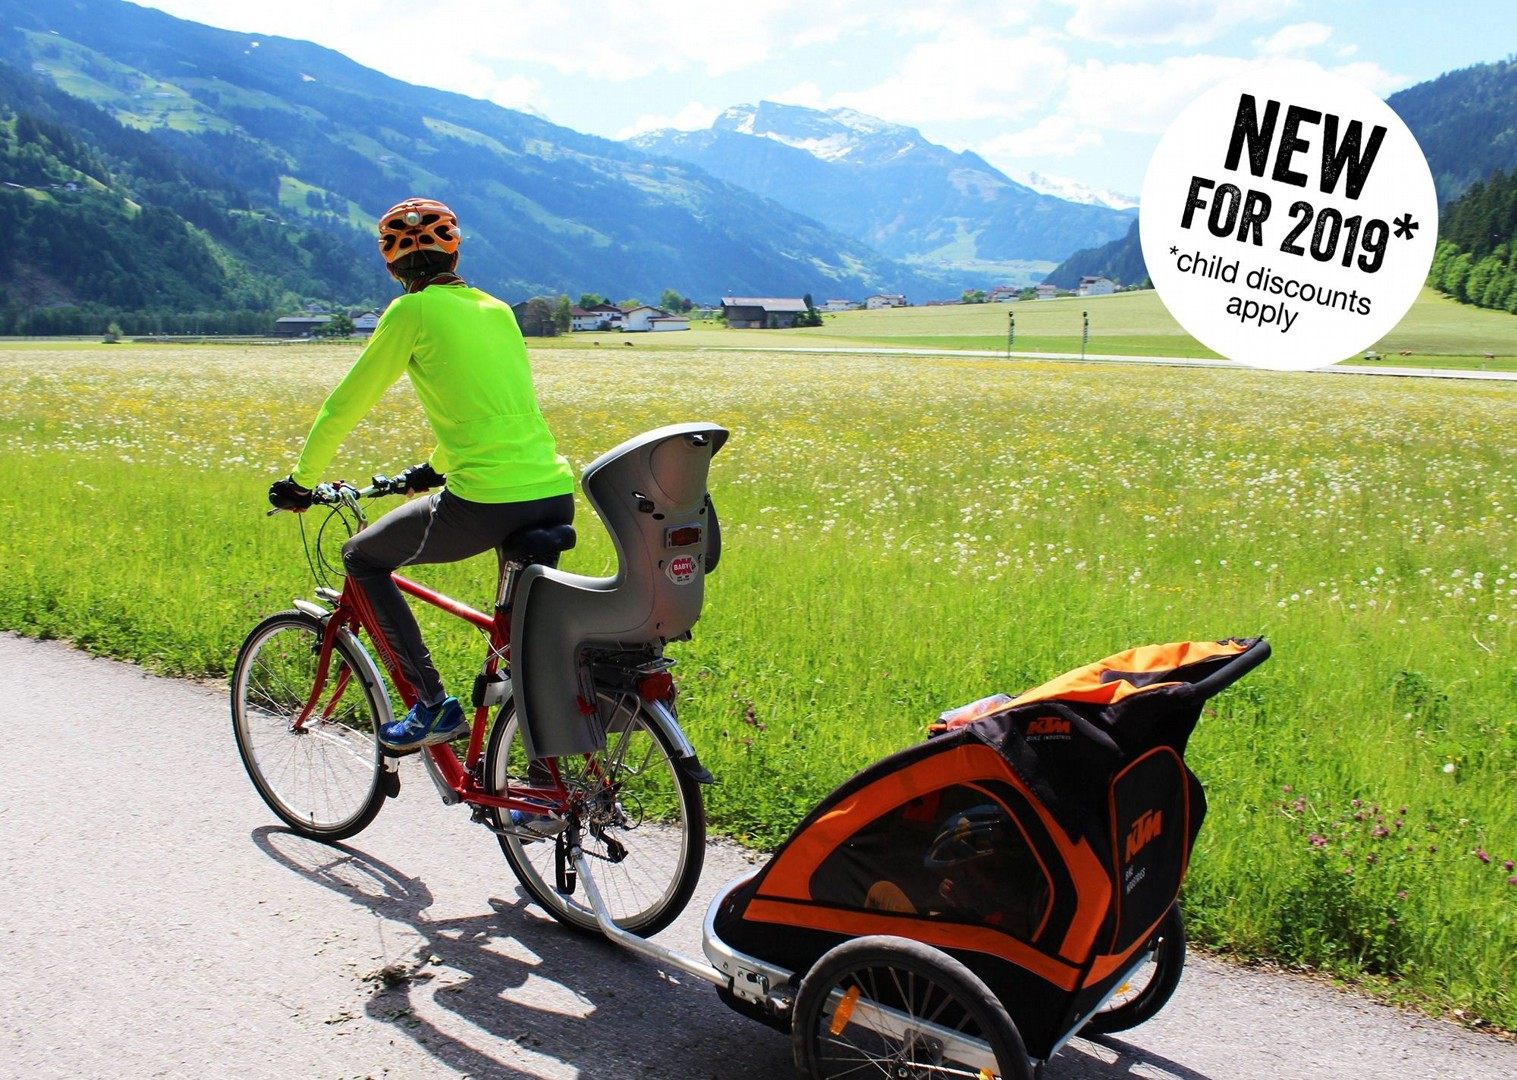 family-cycling-holiday-austria-tauern-valleys-skedaddle.jpg - NEW! Austria - Tauern Valleys - Self-Guided Family Cycling Holiday - Family Cycling